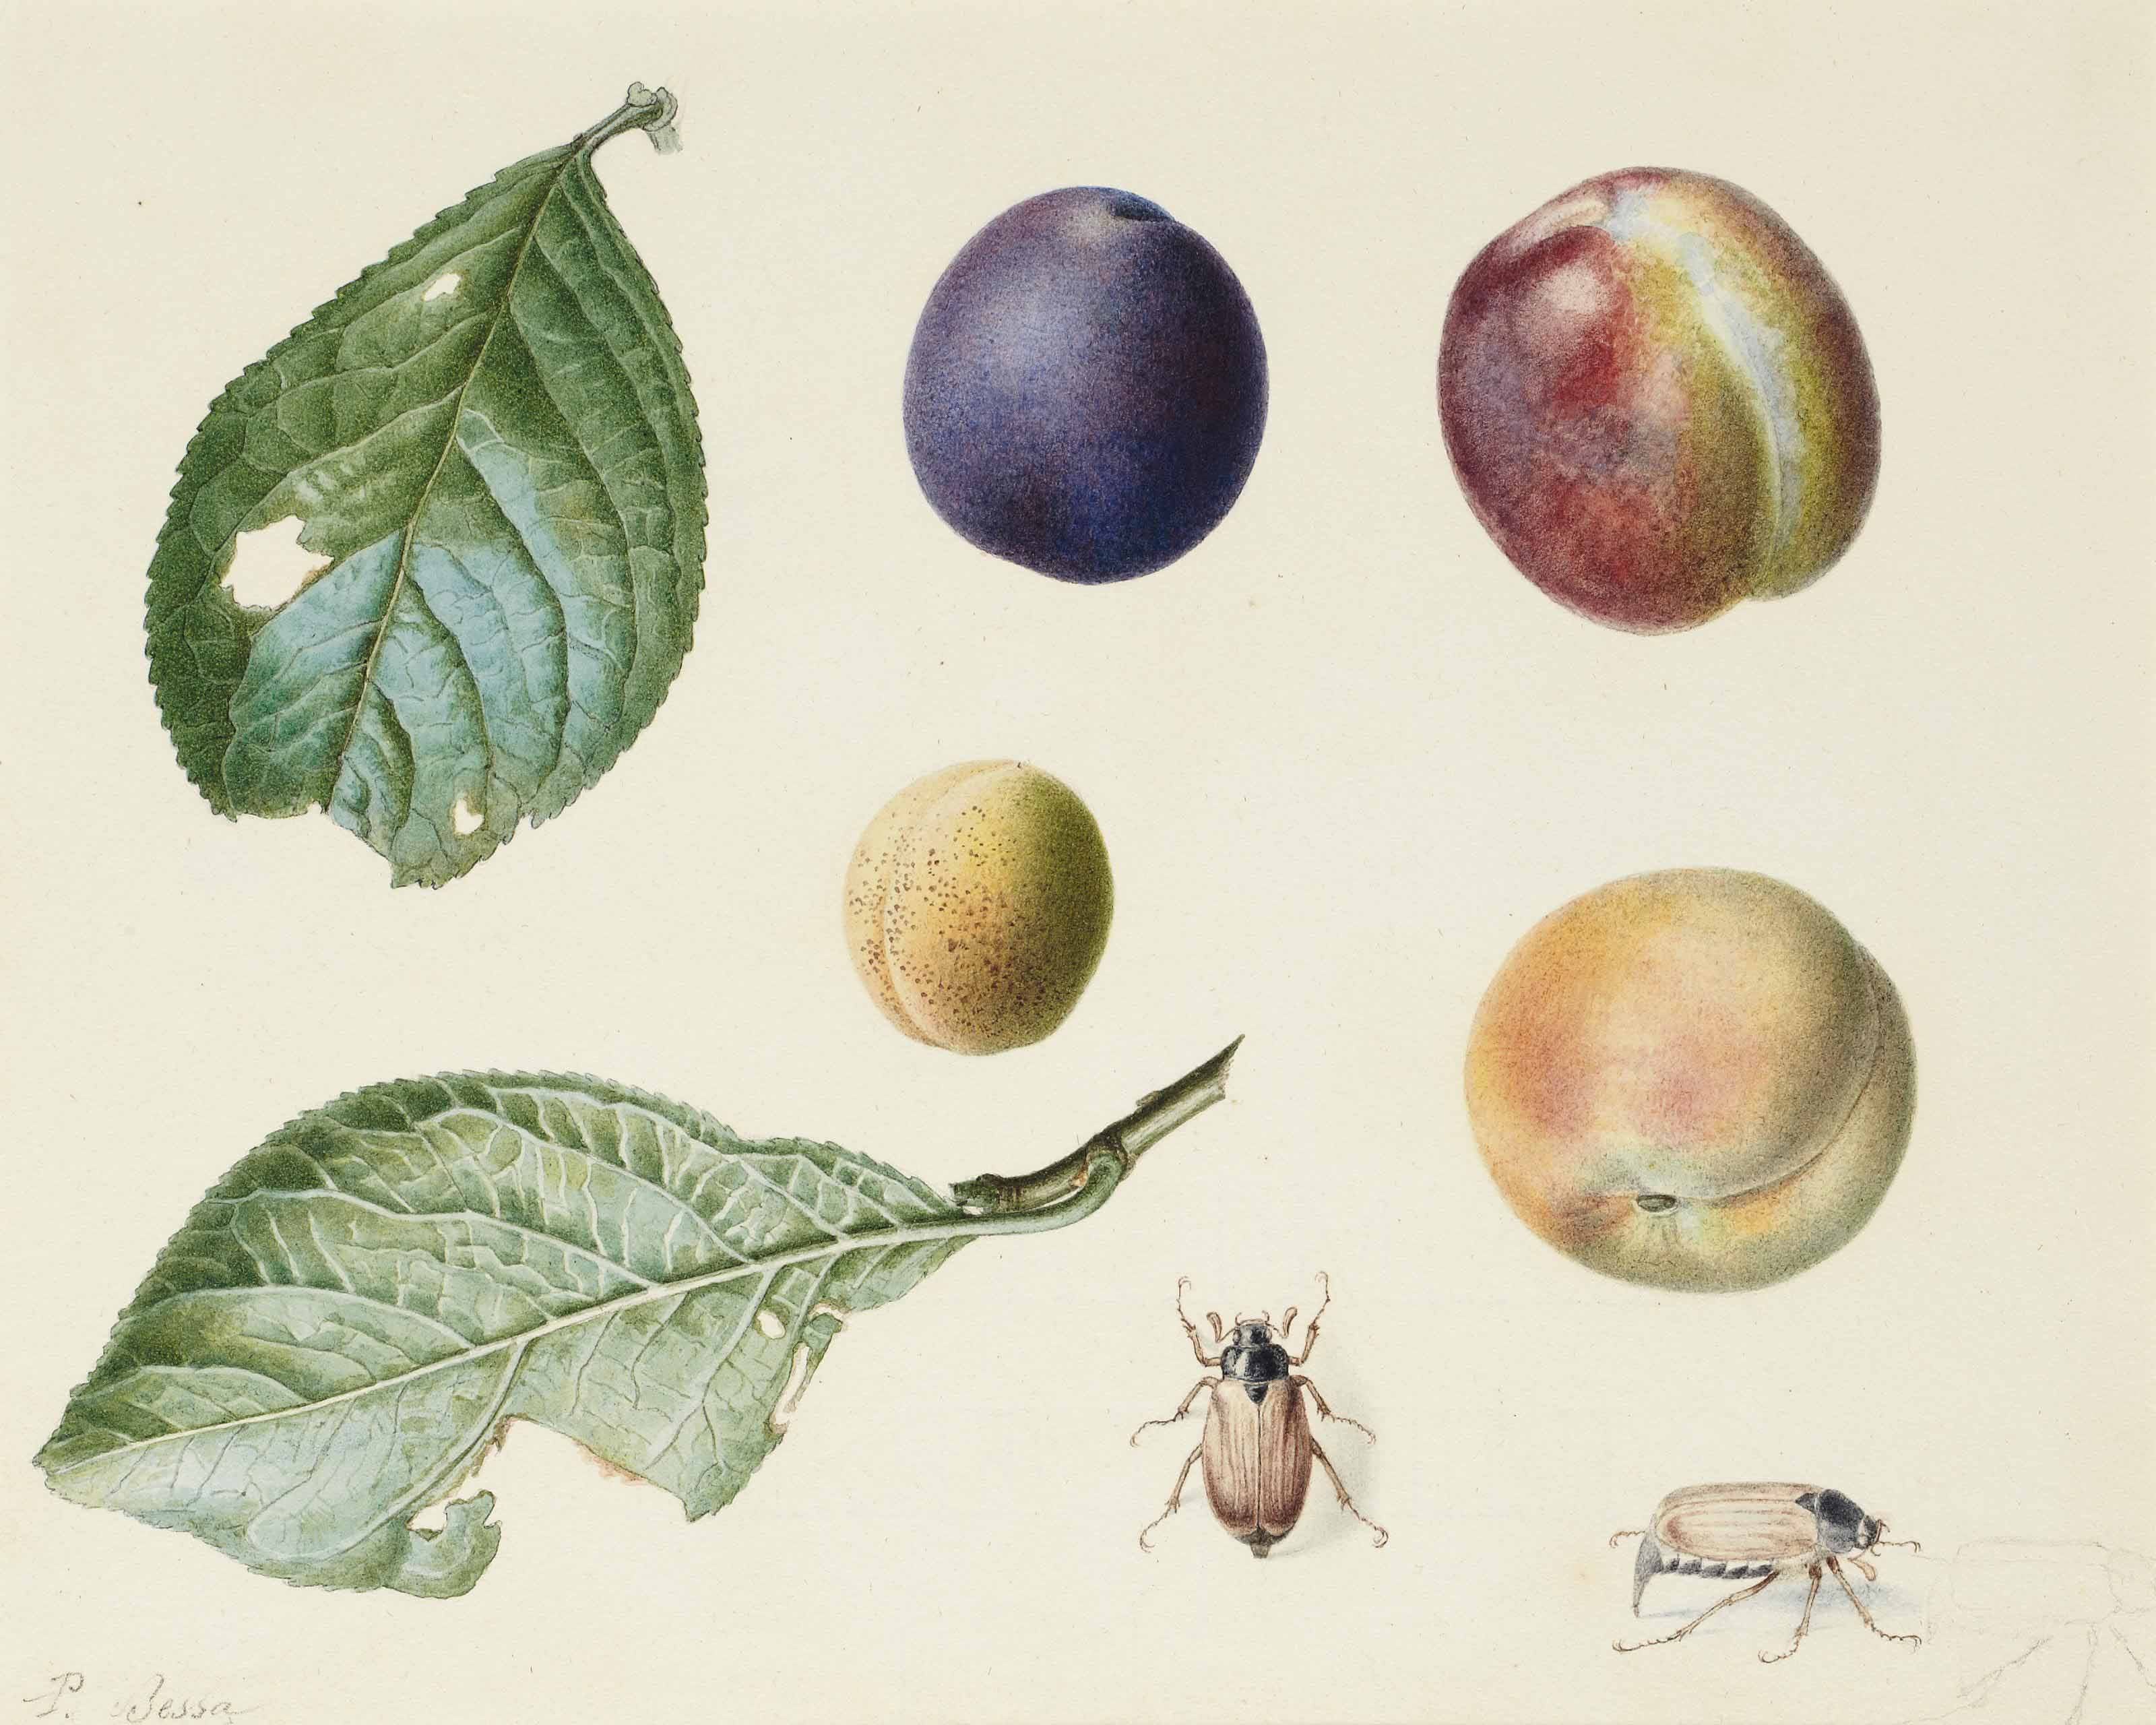 Two plum tree leaves, four different types of plums, two beetles, with a subsidiary study of a third one